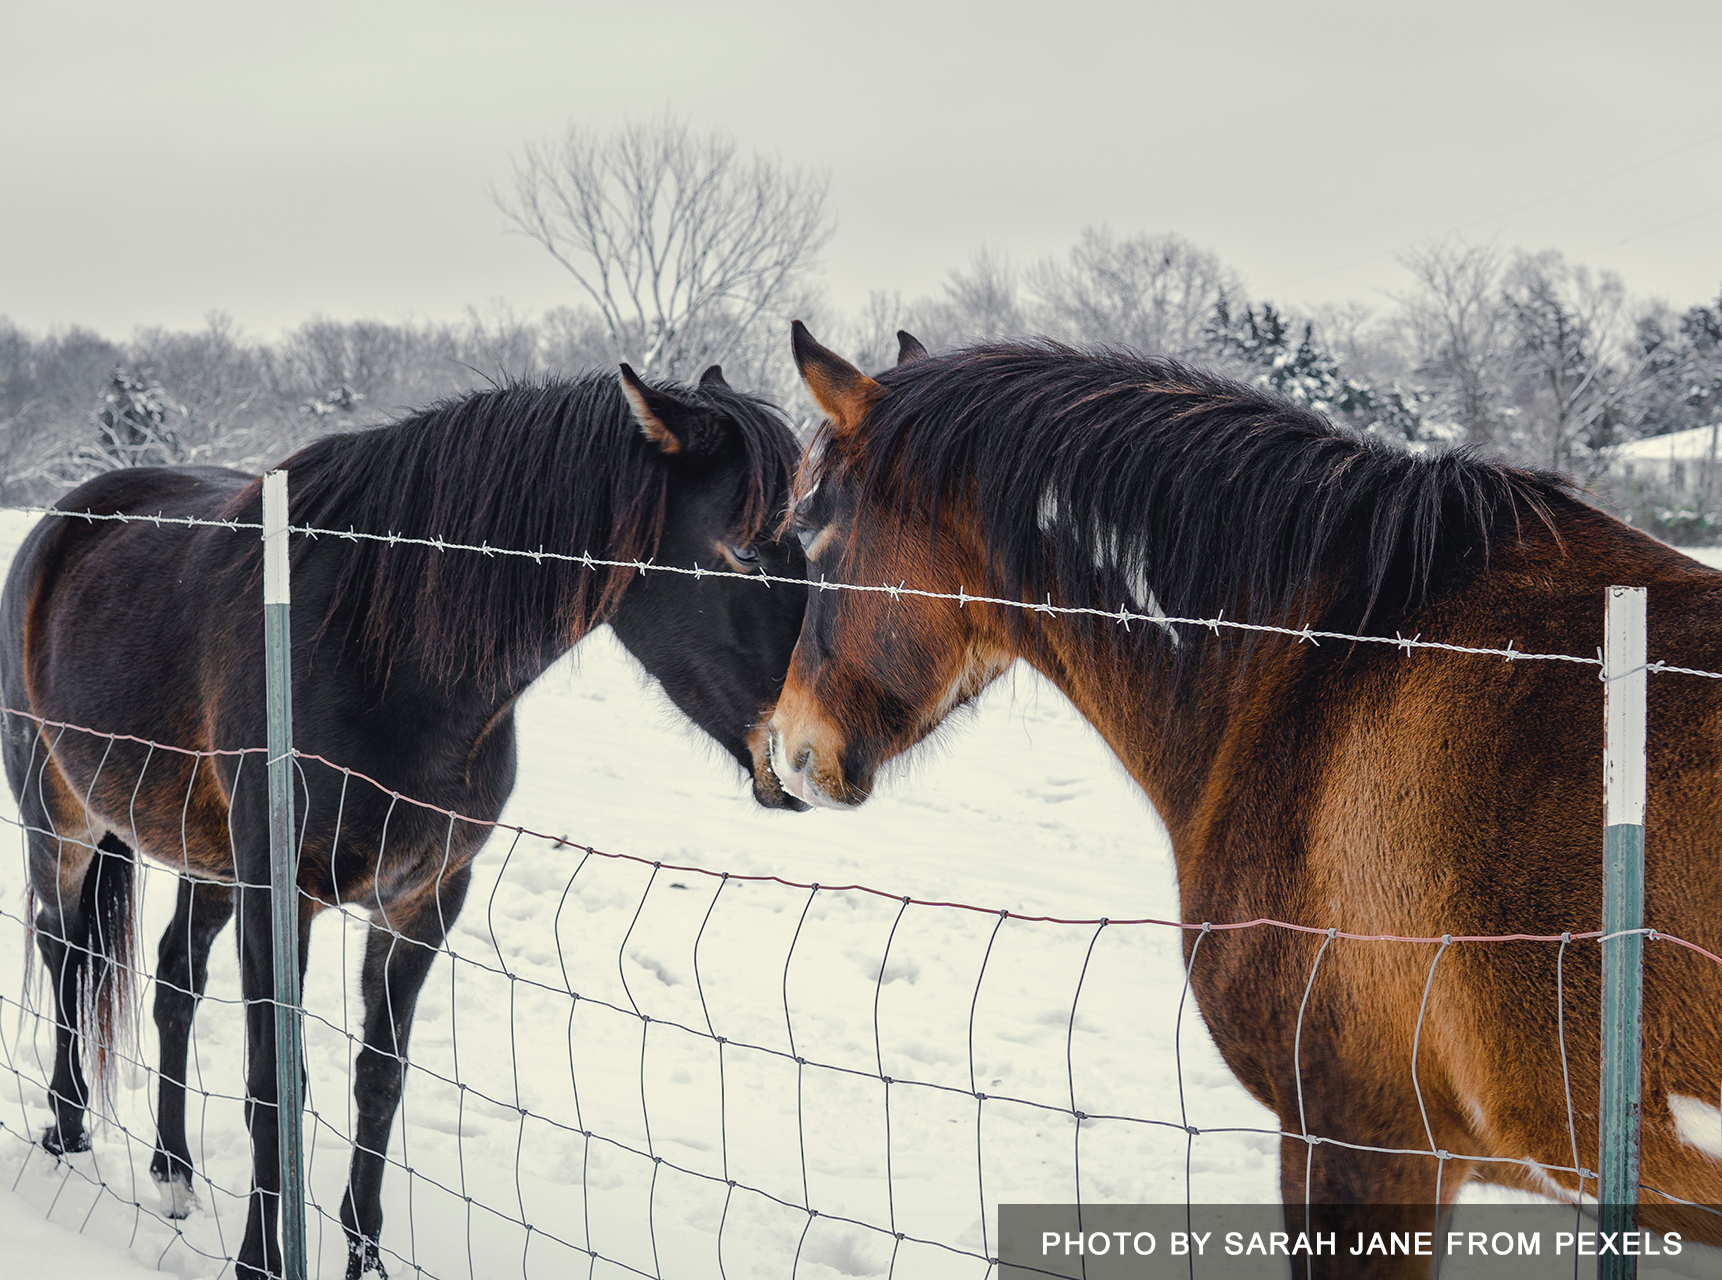 Equine care in winter